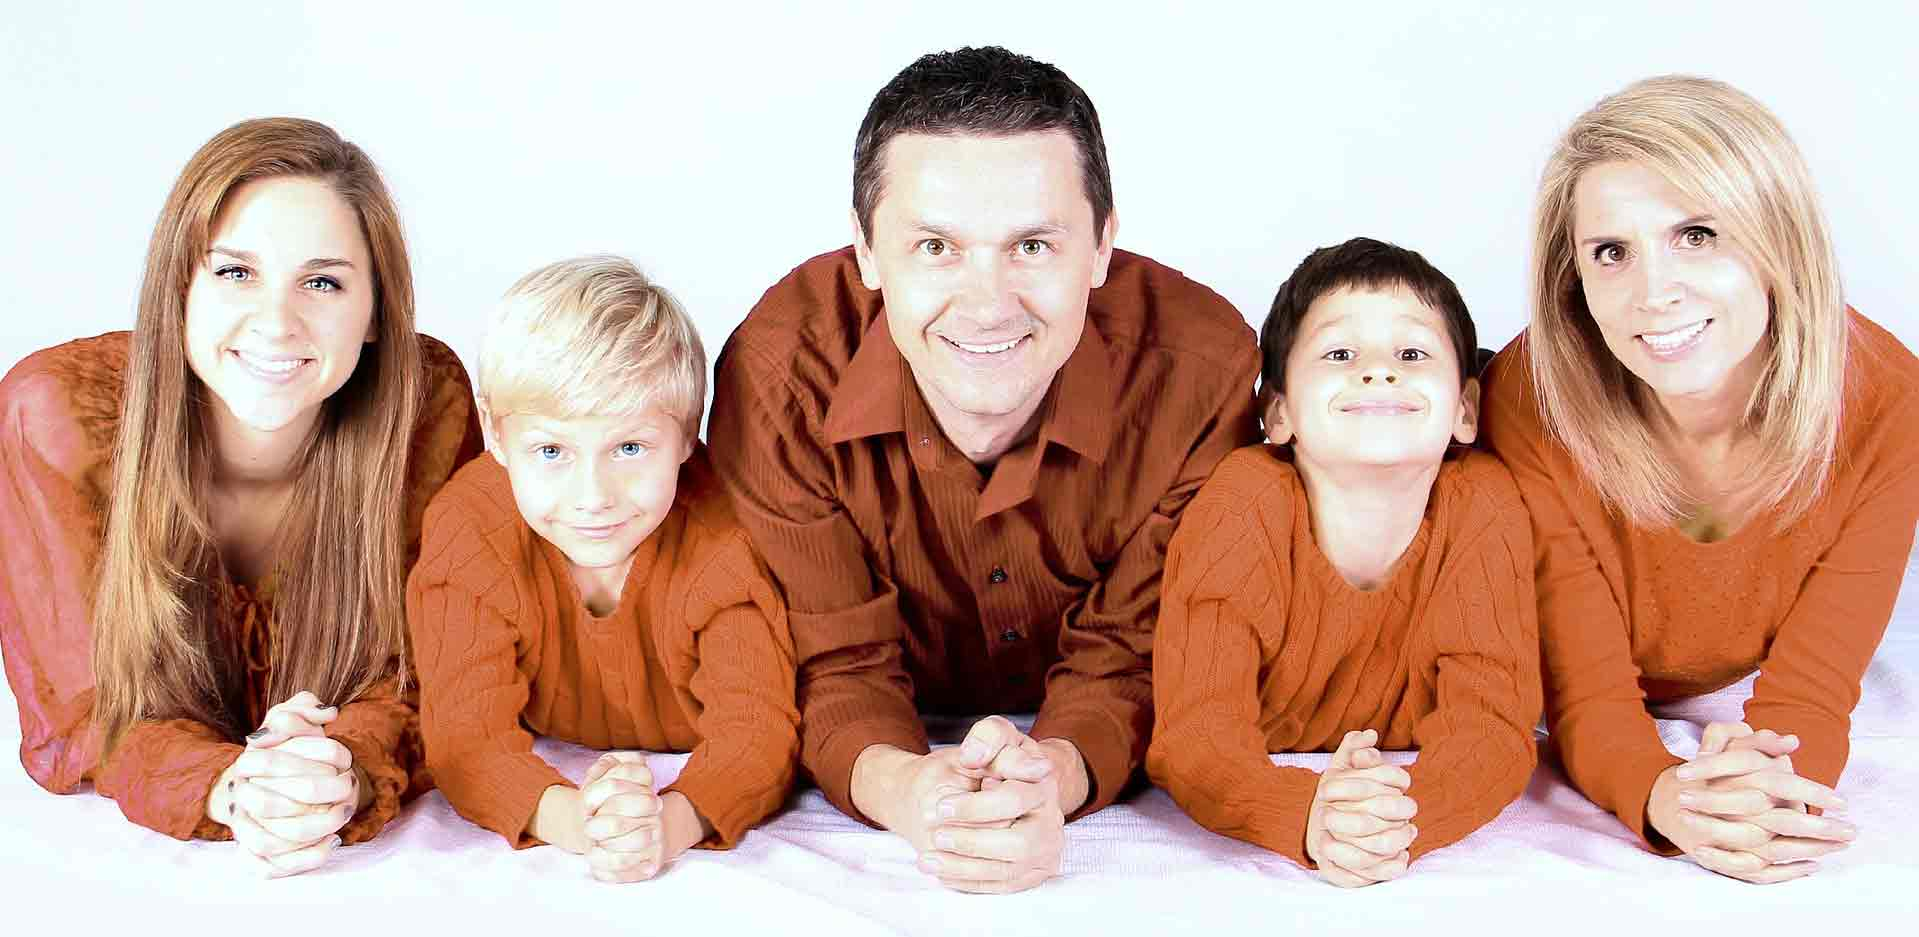 smiling family in orange sweaters lying on their stomachs